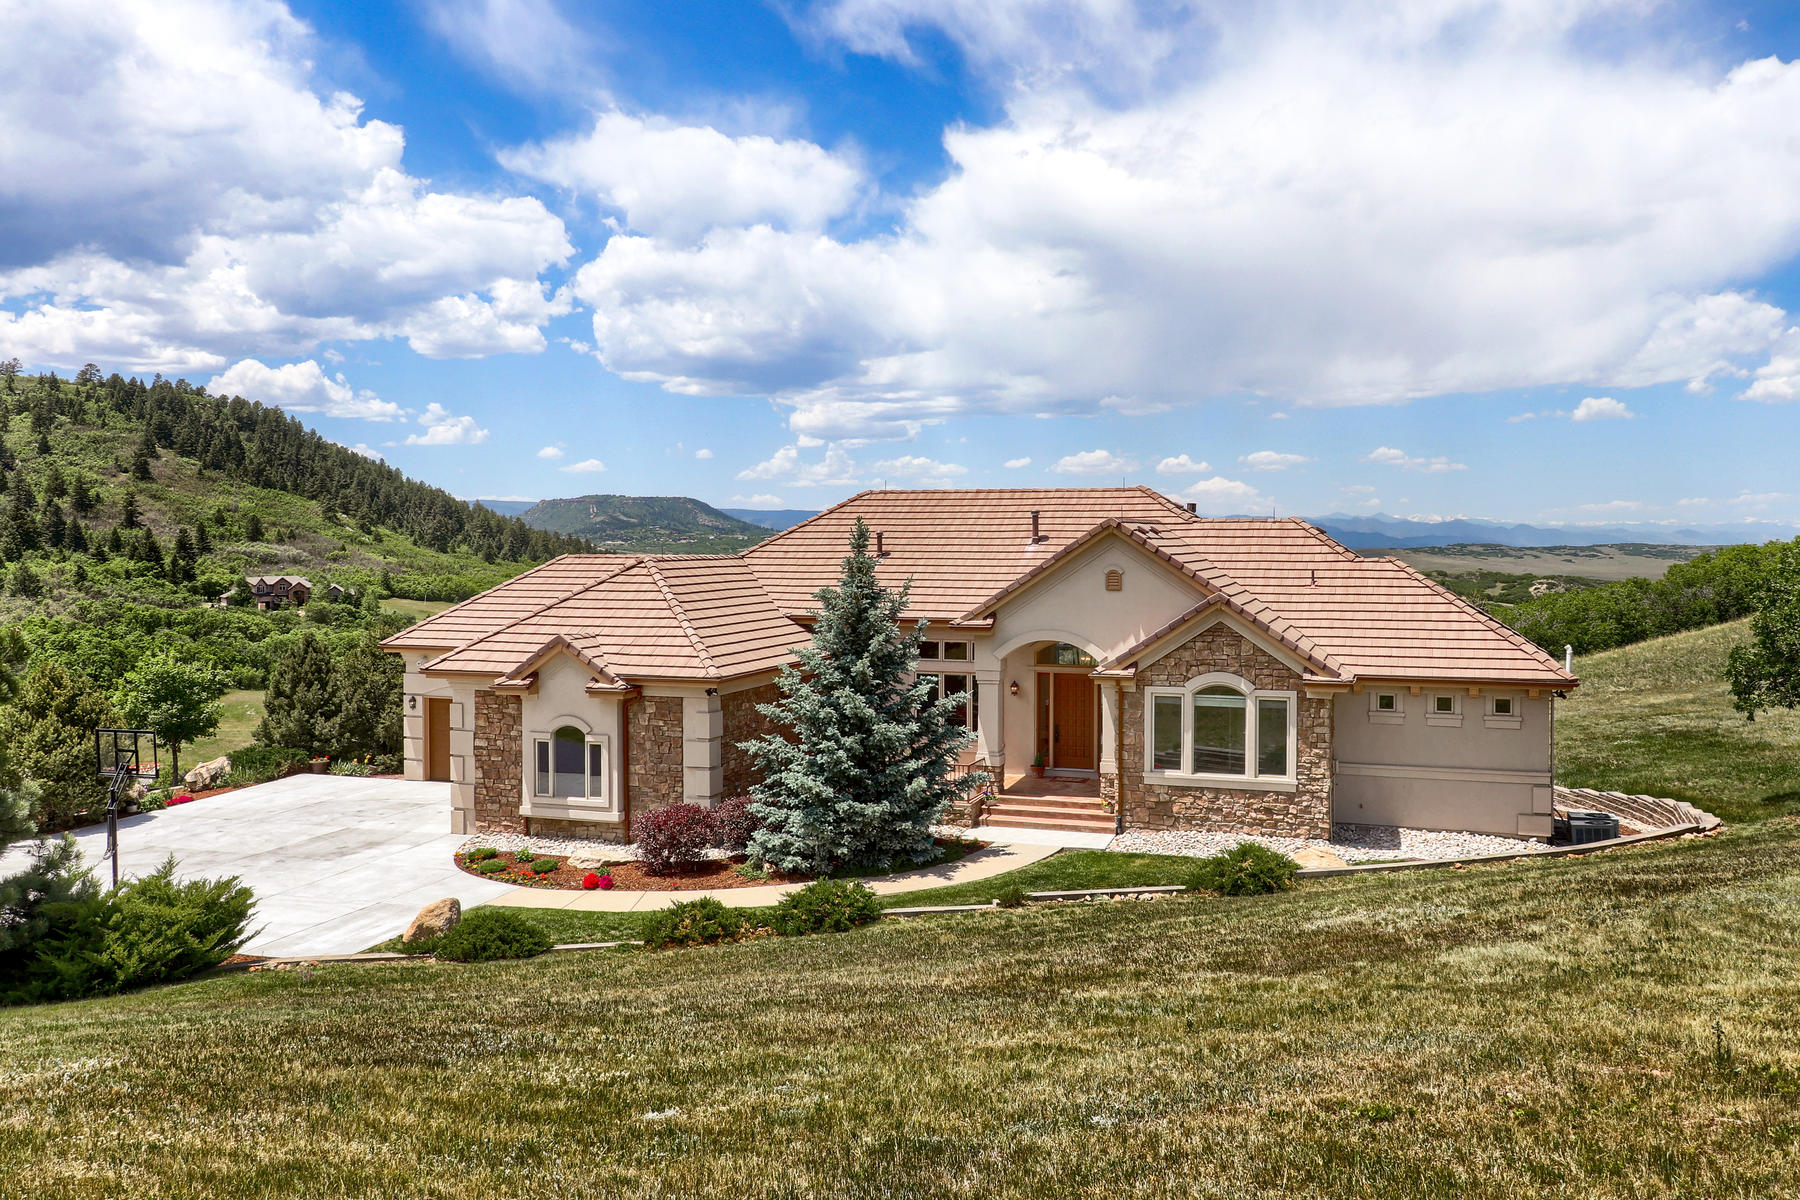 Property for Active at This elegant home embraces the beauty and serenity of its surroundings. 4601 High Spring Rd Castle Rock, Colorado 80104 United States